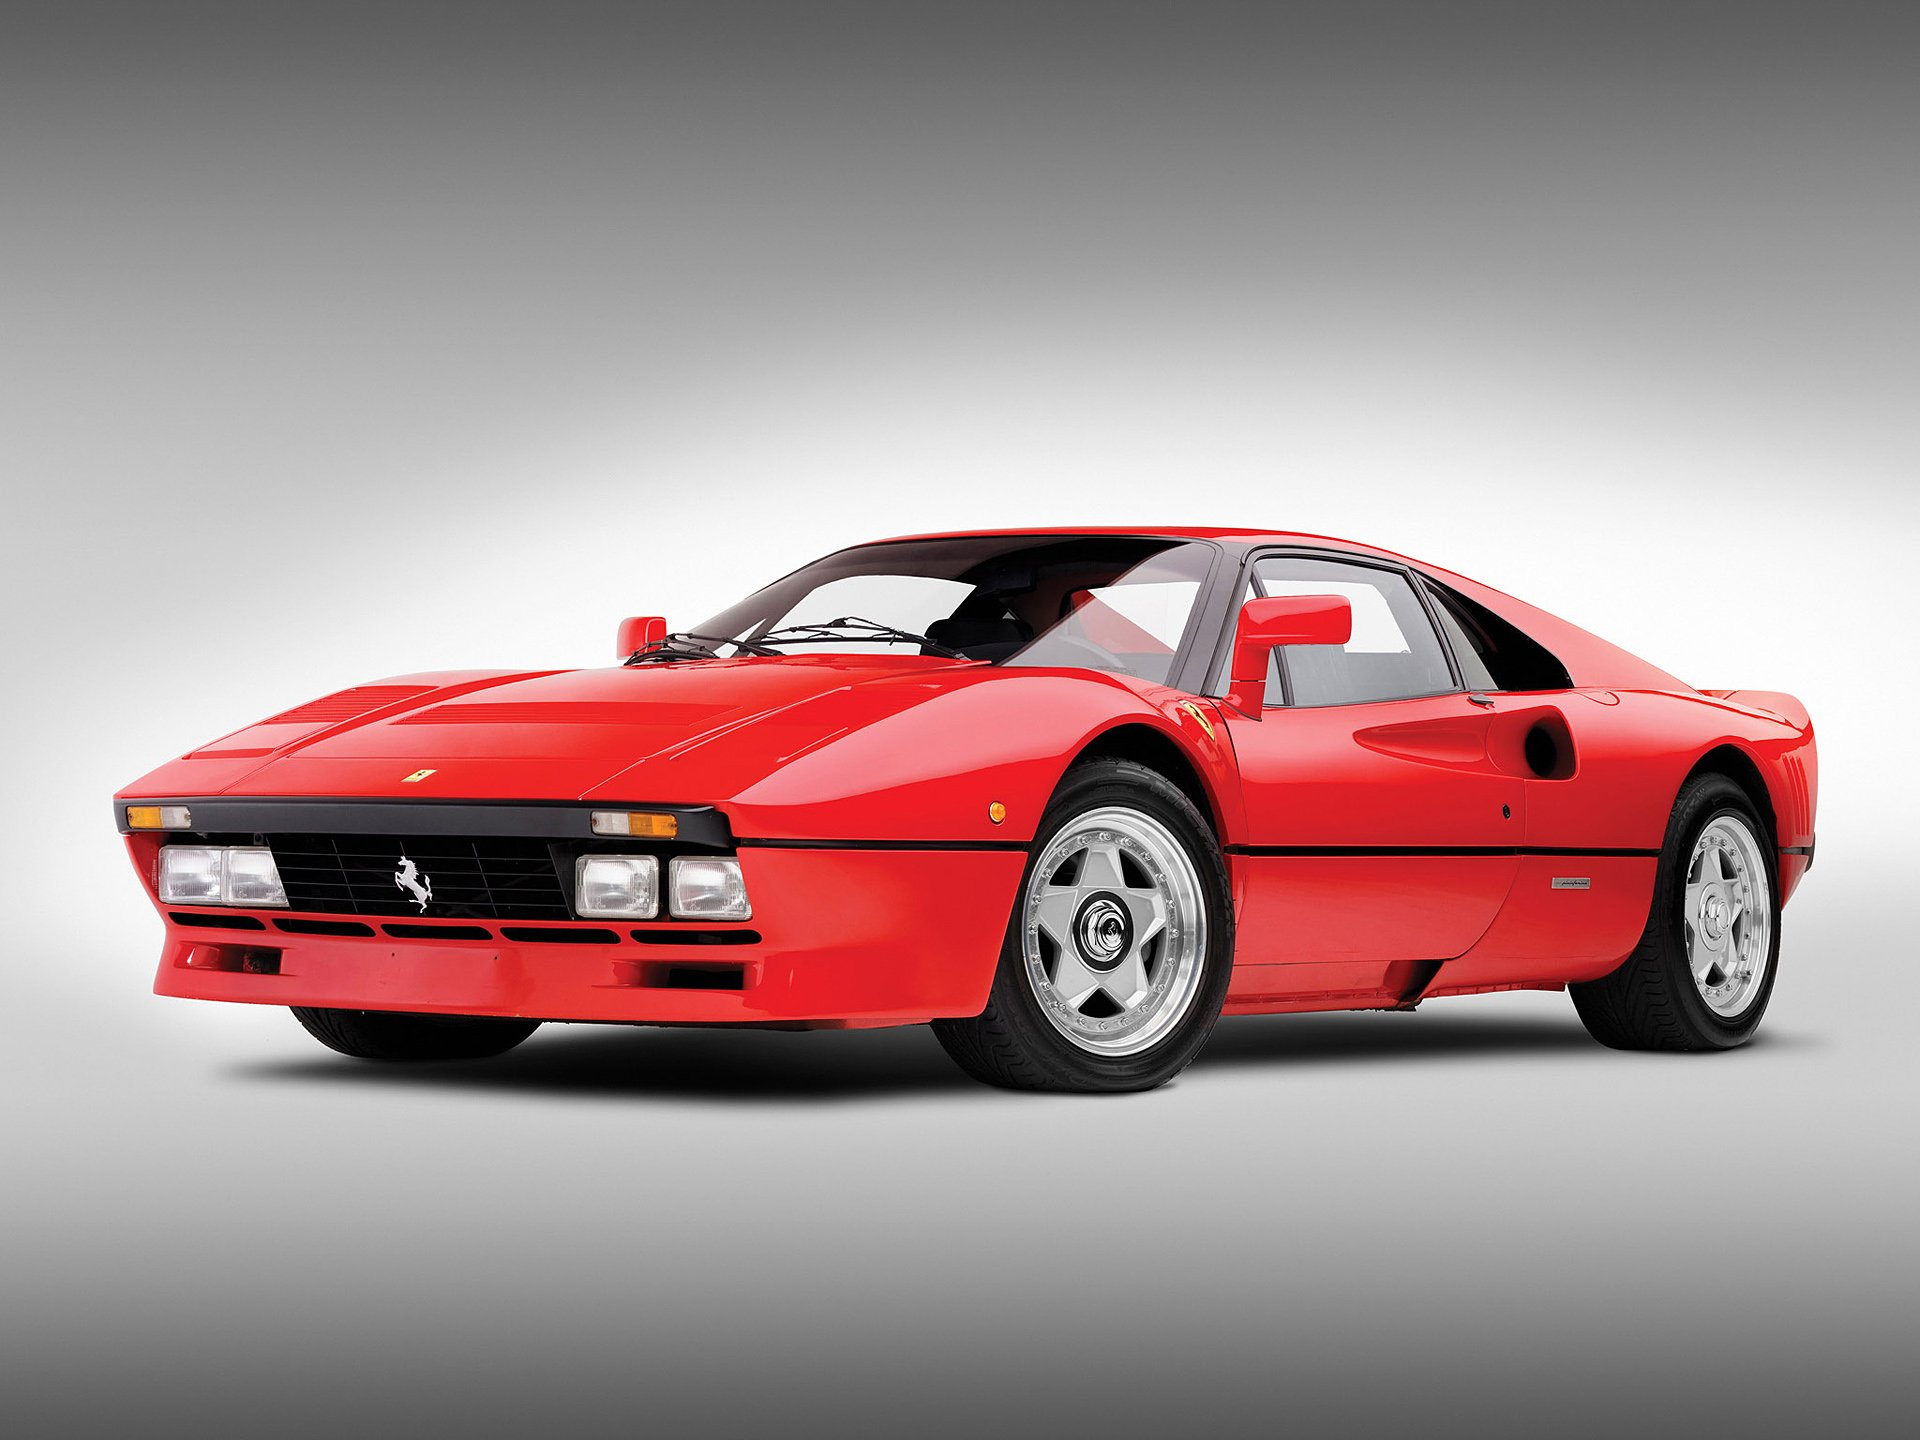 17 Ferrari 288 Gto Hd Wallpapers Background Images Wallpaper Abyss